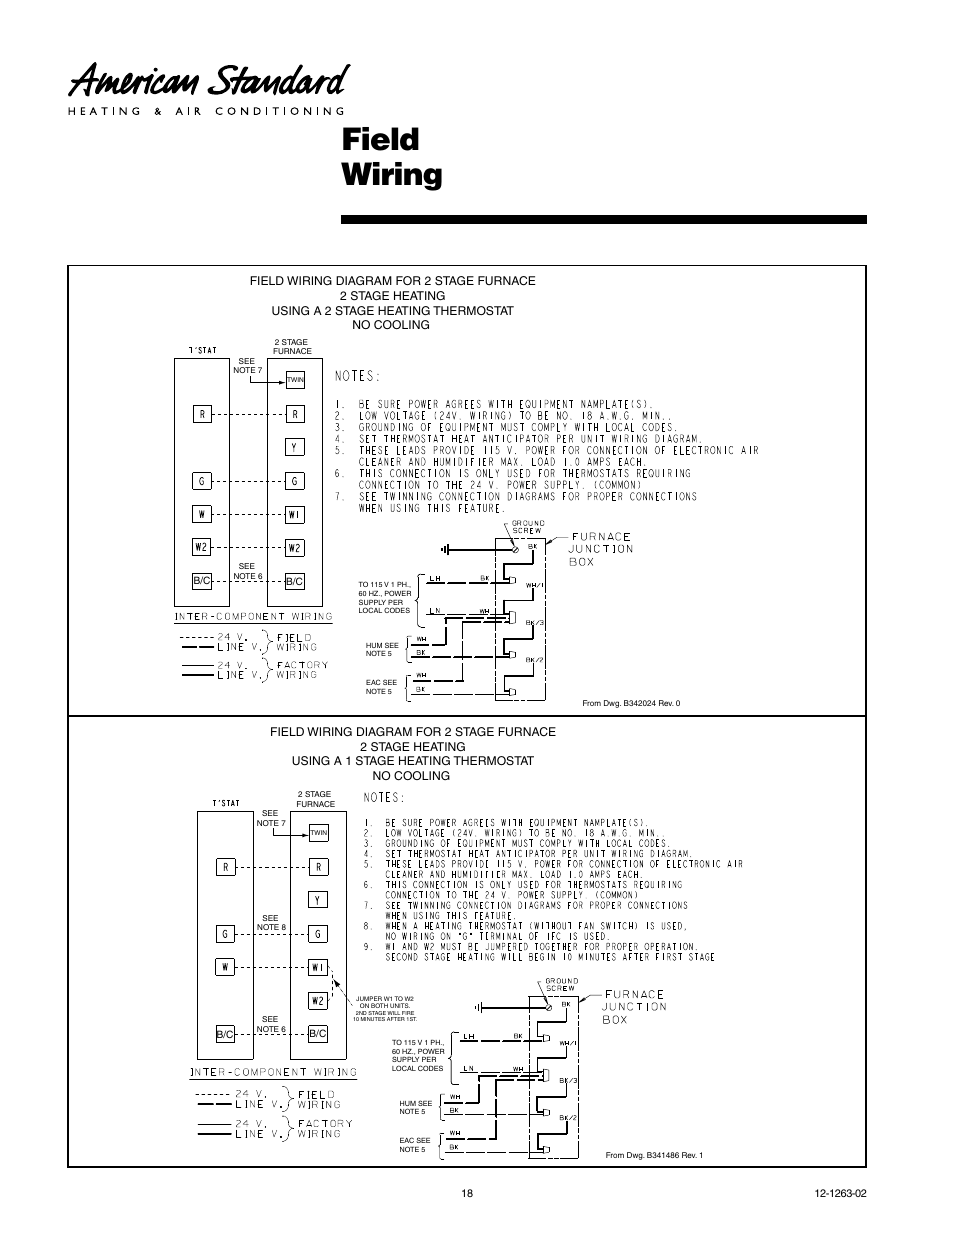 american standard freedom 80 page18 field wiring american standard freedom 80 user manual page 18 24 2-stage furnace thermostat wiring diagram at suagrazia.org